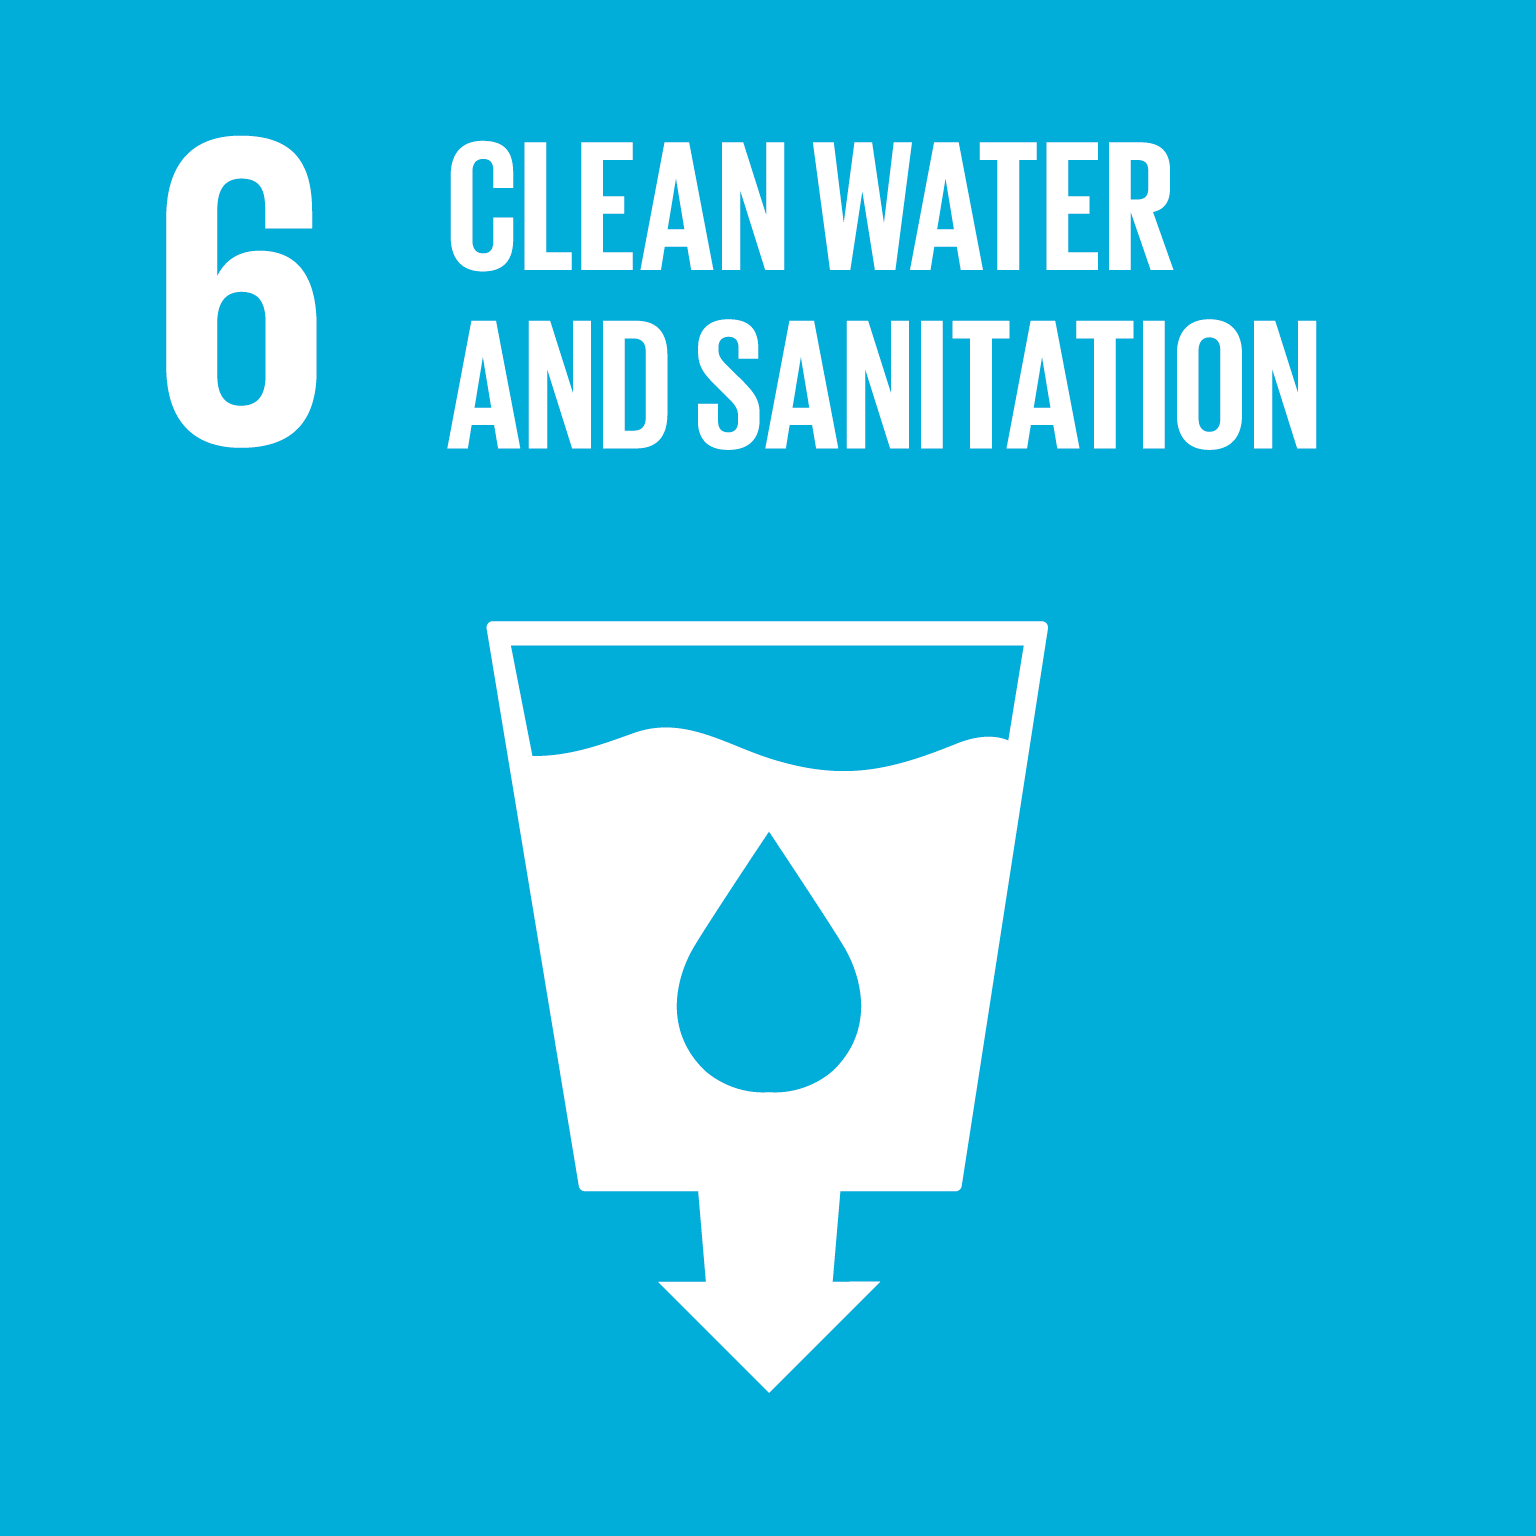 Sustainable Development Goal 6 Png - File:Sustainable Development Goal 6.png - Wikimedia Commons